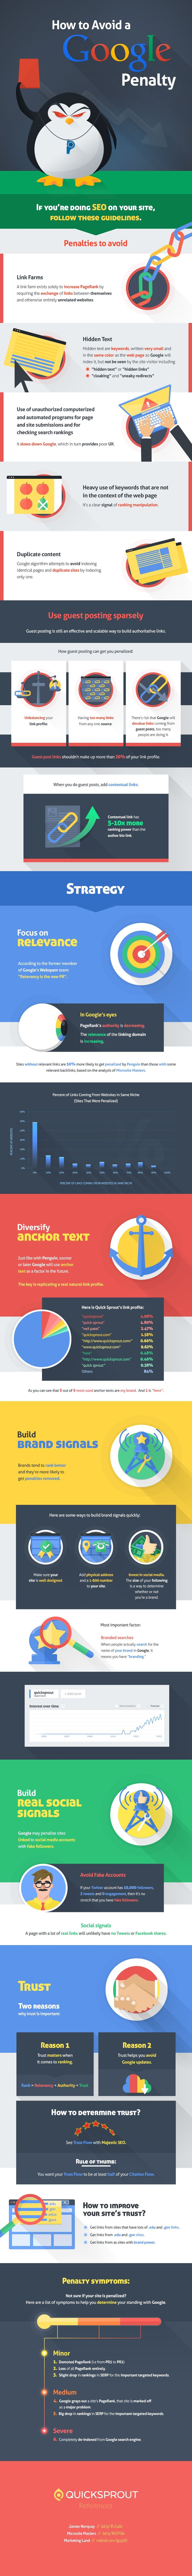 How to Avoid a Google Penalty [Infographic], via @HubSpot